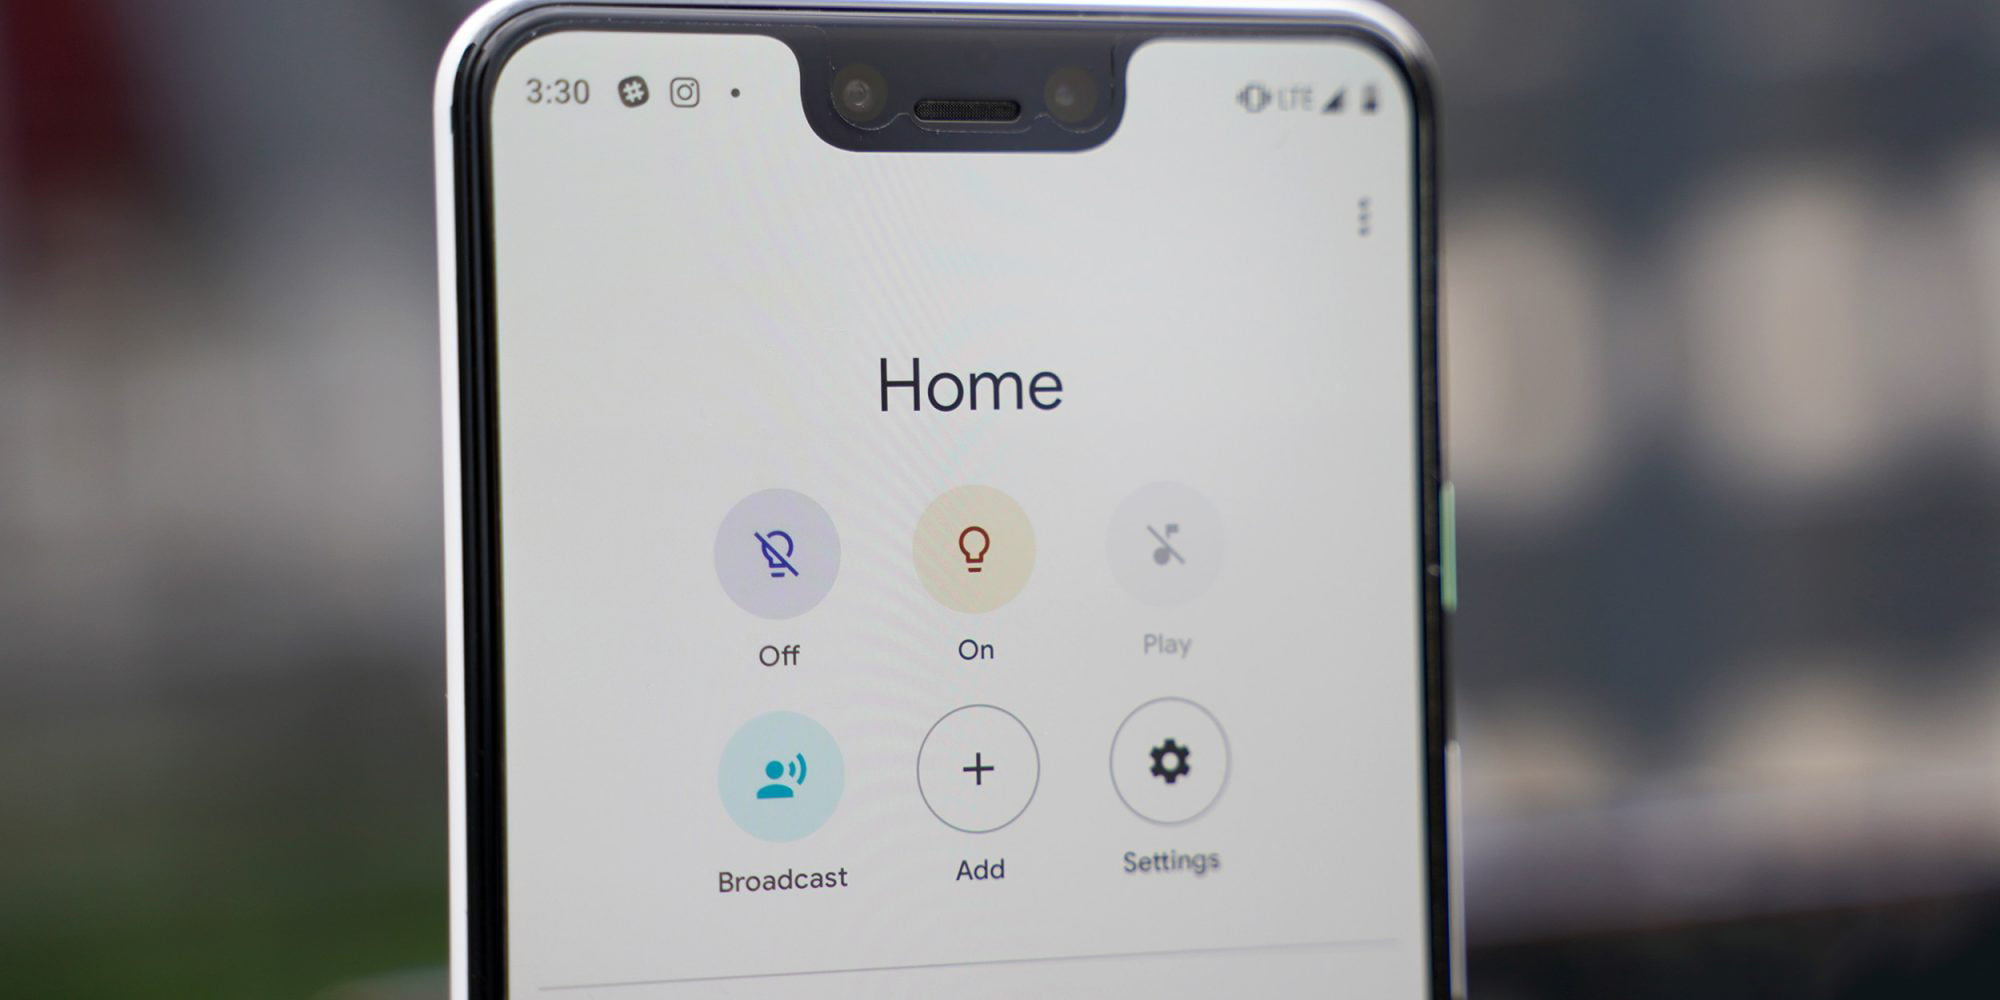 google home app starts showing apps